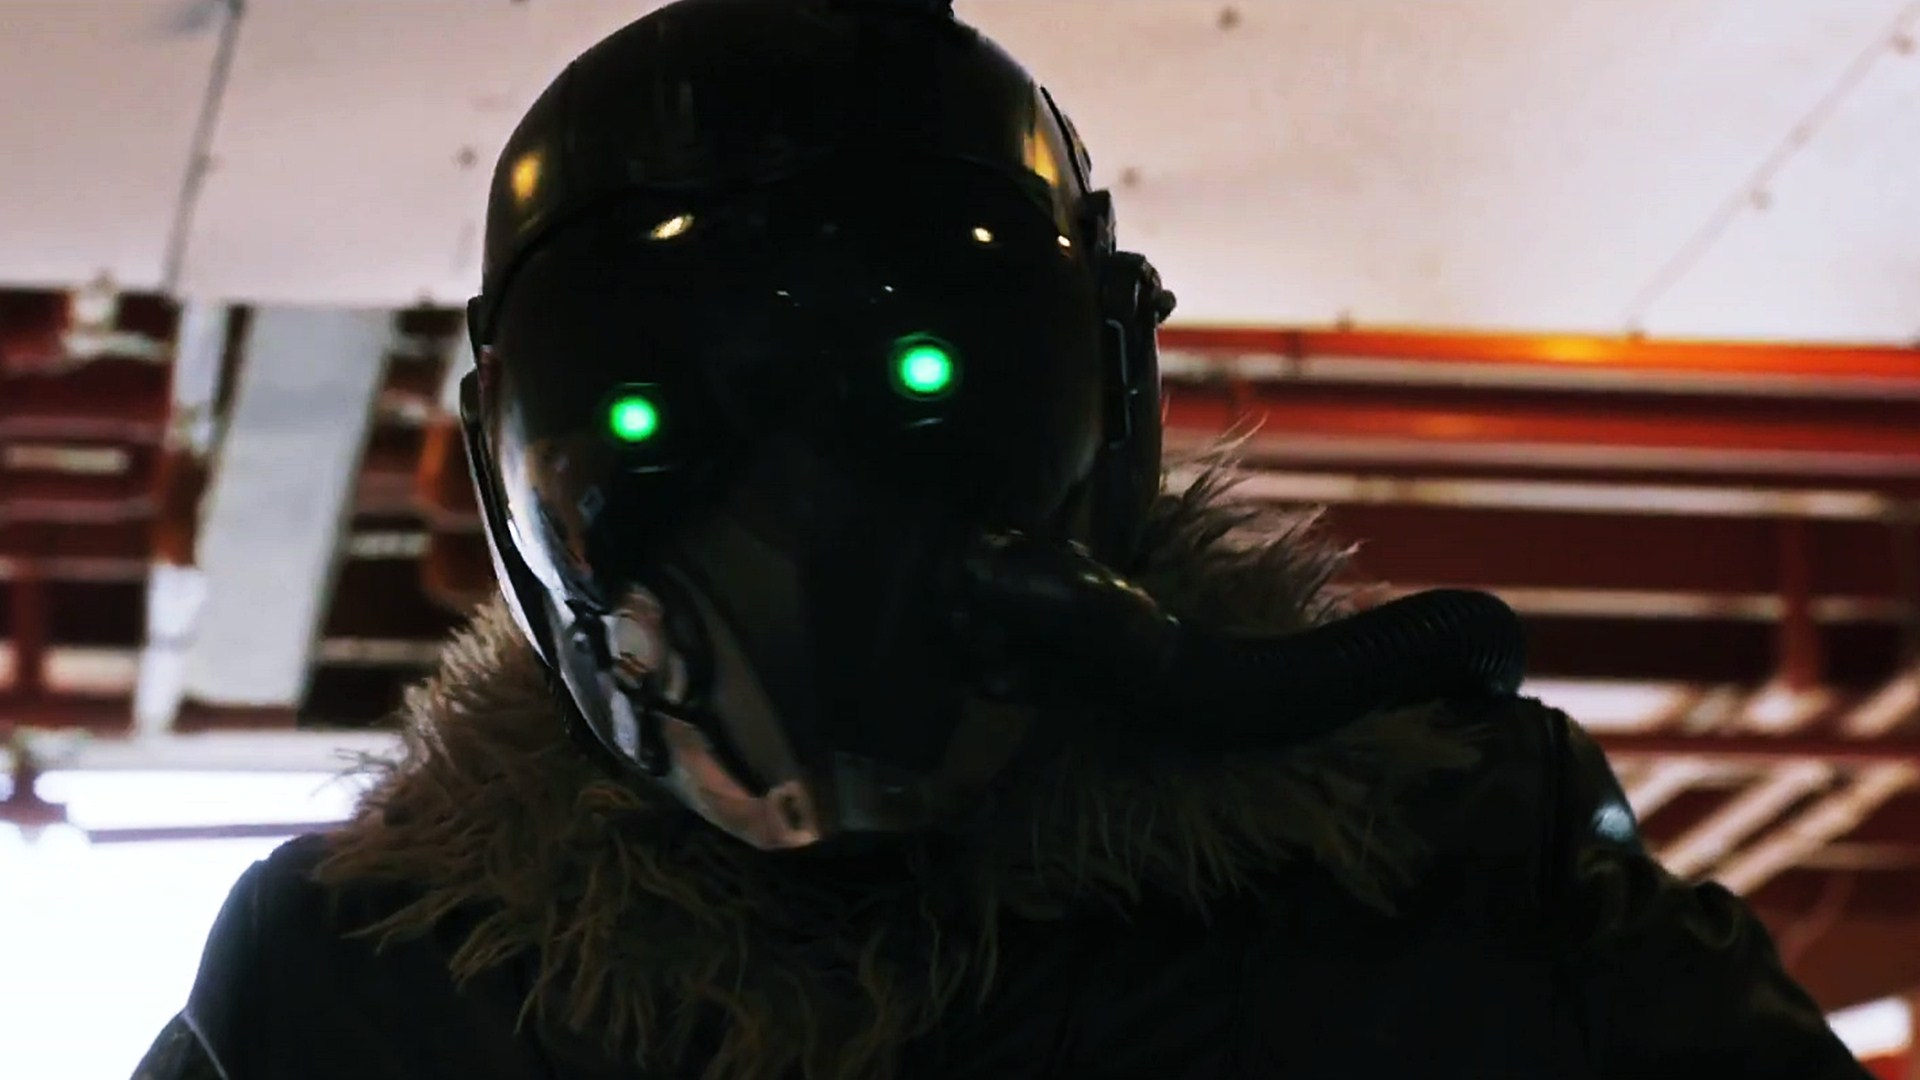 Download Original Resolution   Spiderman Homecoming Vulture Mask 1920x1080